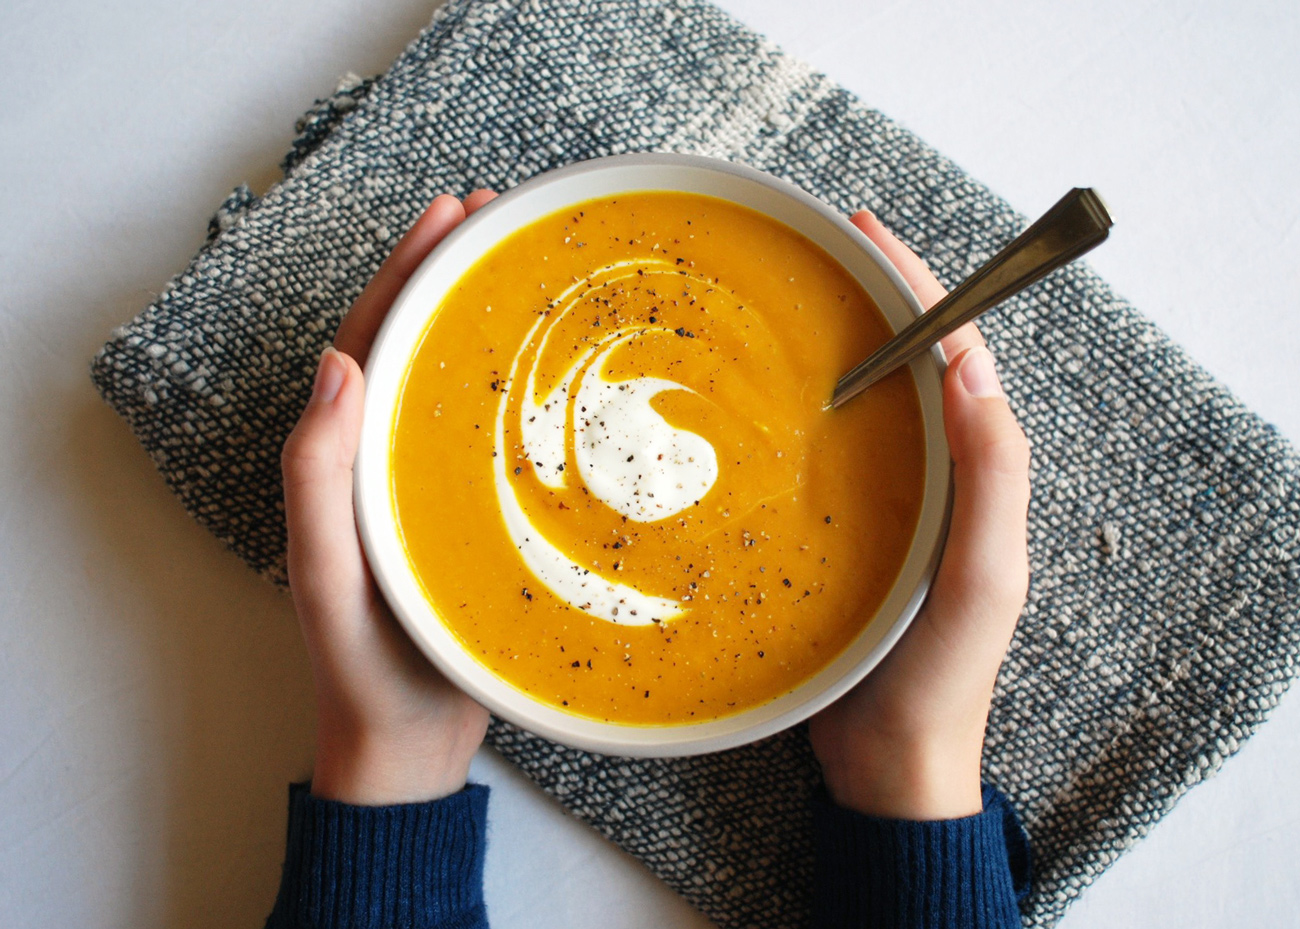 cancer prevention carrot soup recipe - to bust cancer! - with garlic, turmeric, and ginger.